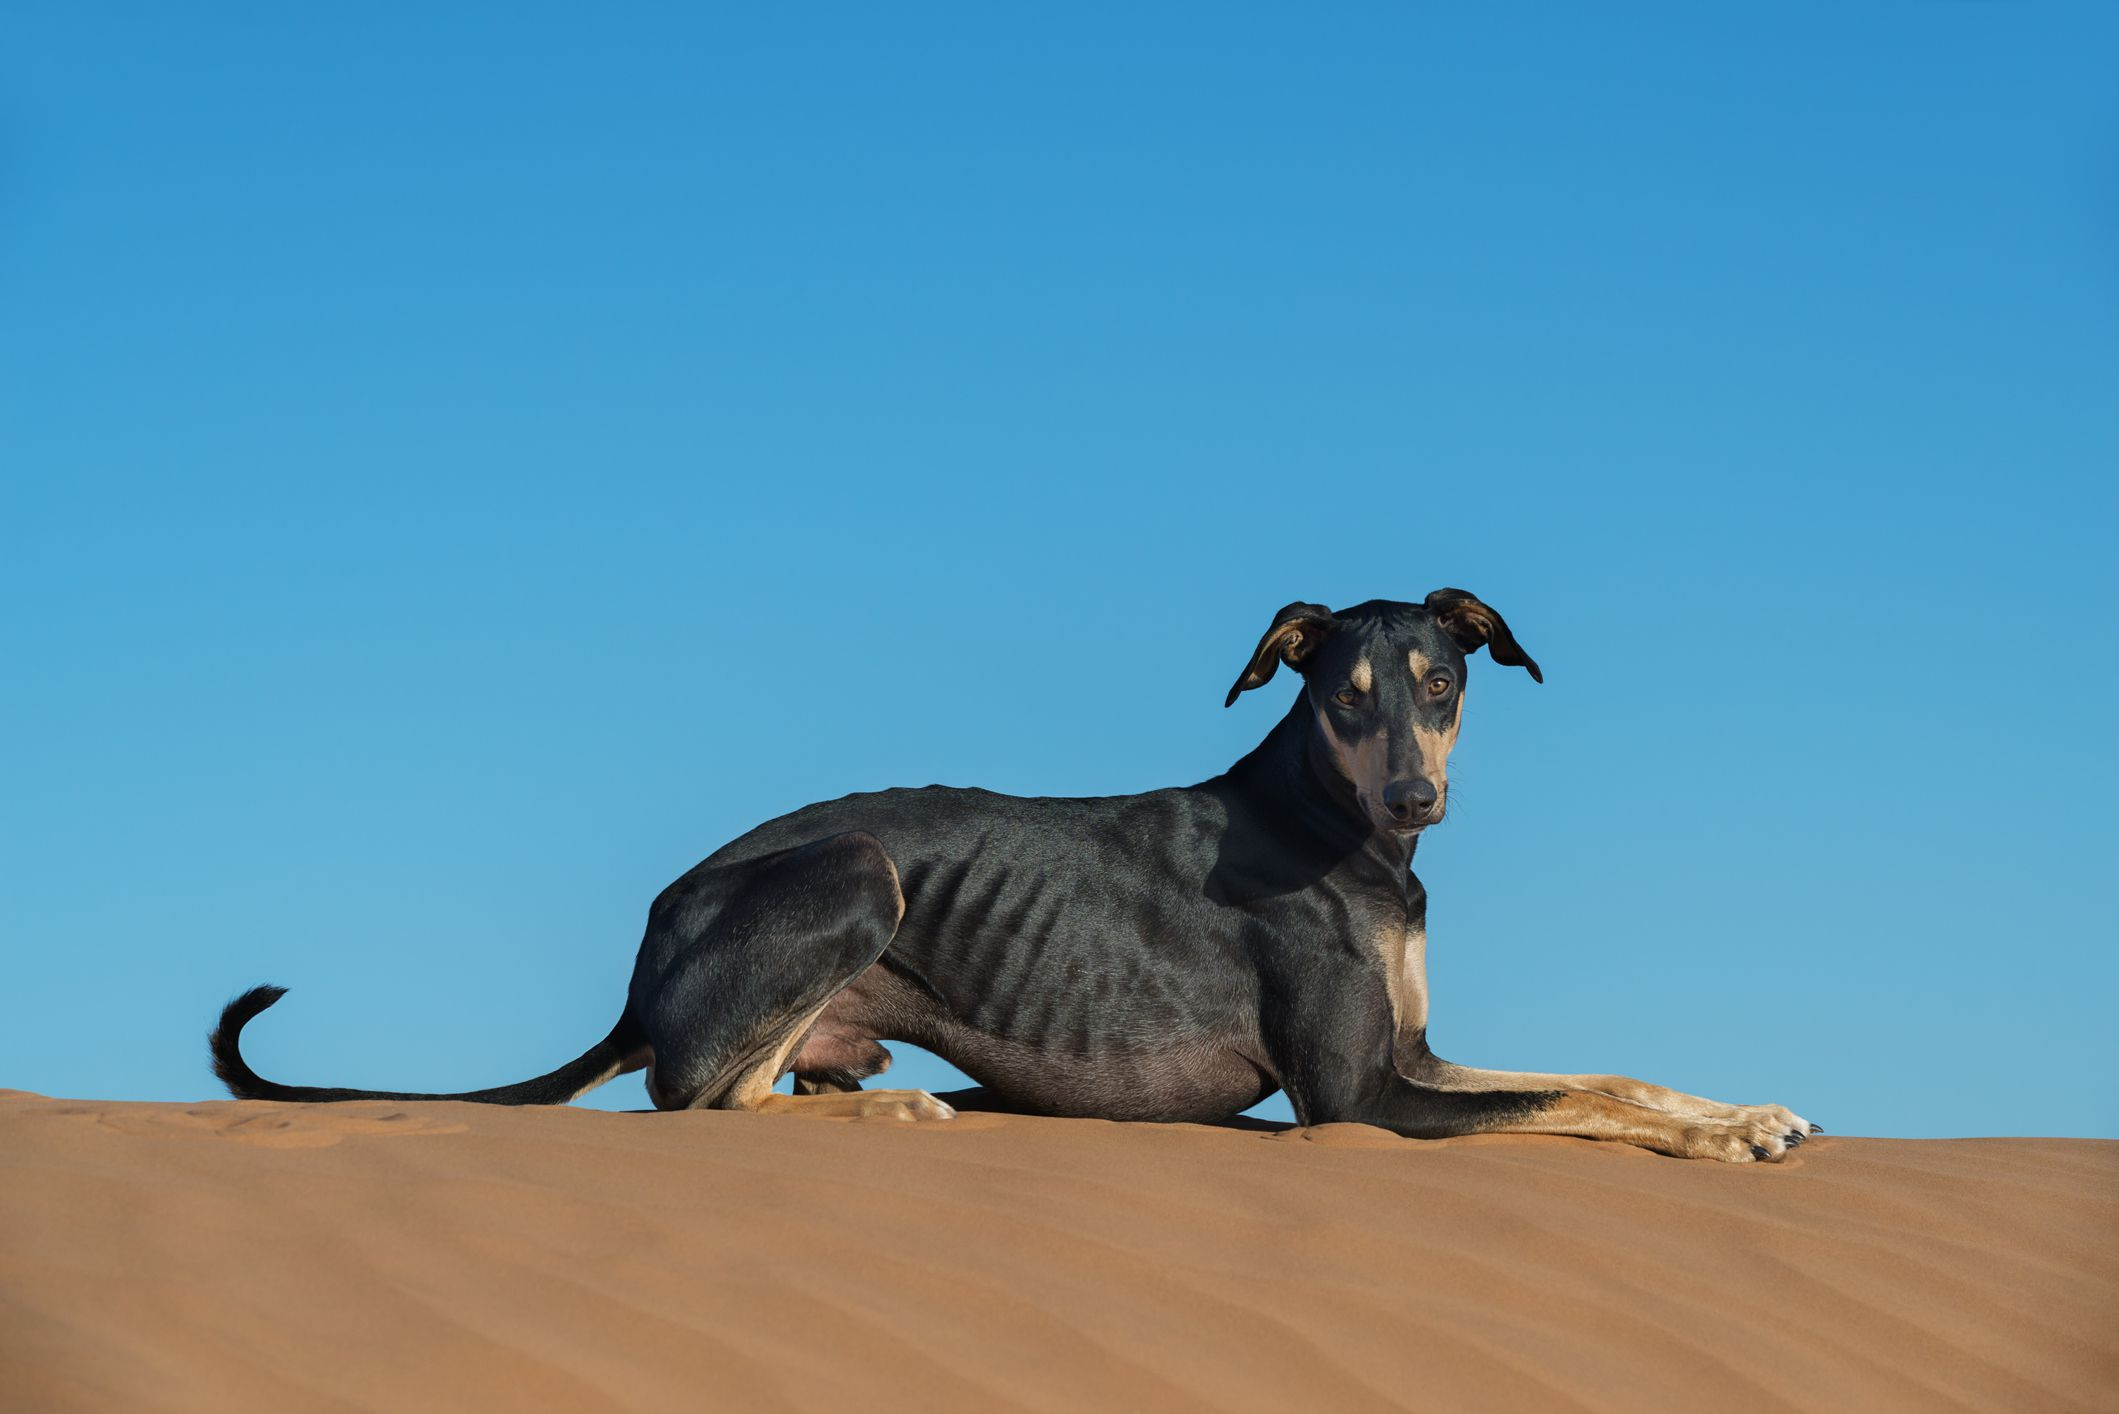 Black Sloughi laying down on top of sand dune.